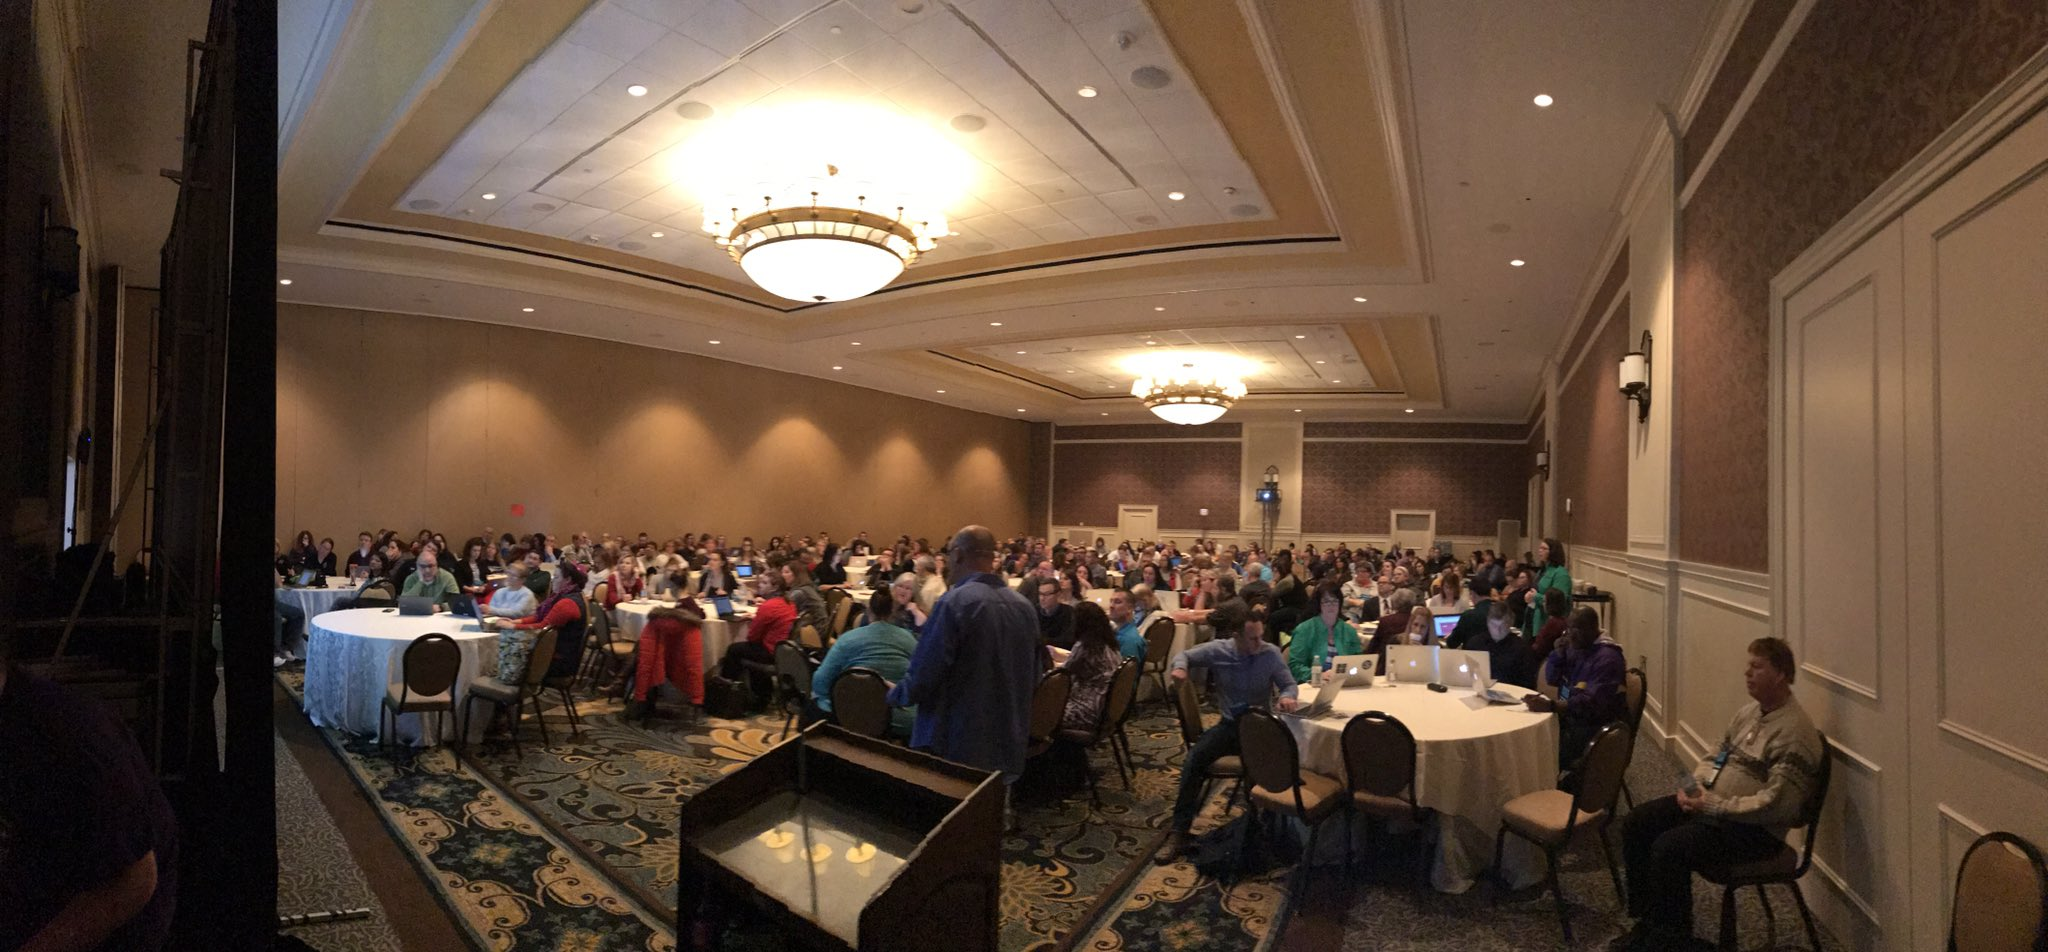 Thank you to everyone that came to the 9th year of 60in60 at #pete2017 see the link if you missed it! https://t.co/dGpDWkkBqk @Thespian70 https://t.co/KQbeAMFh3s